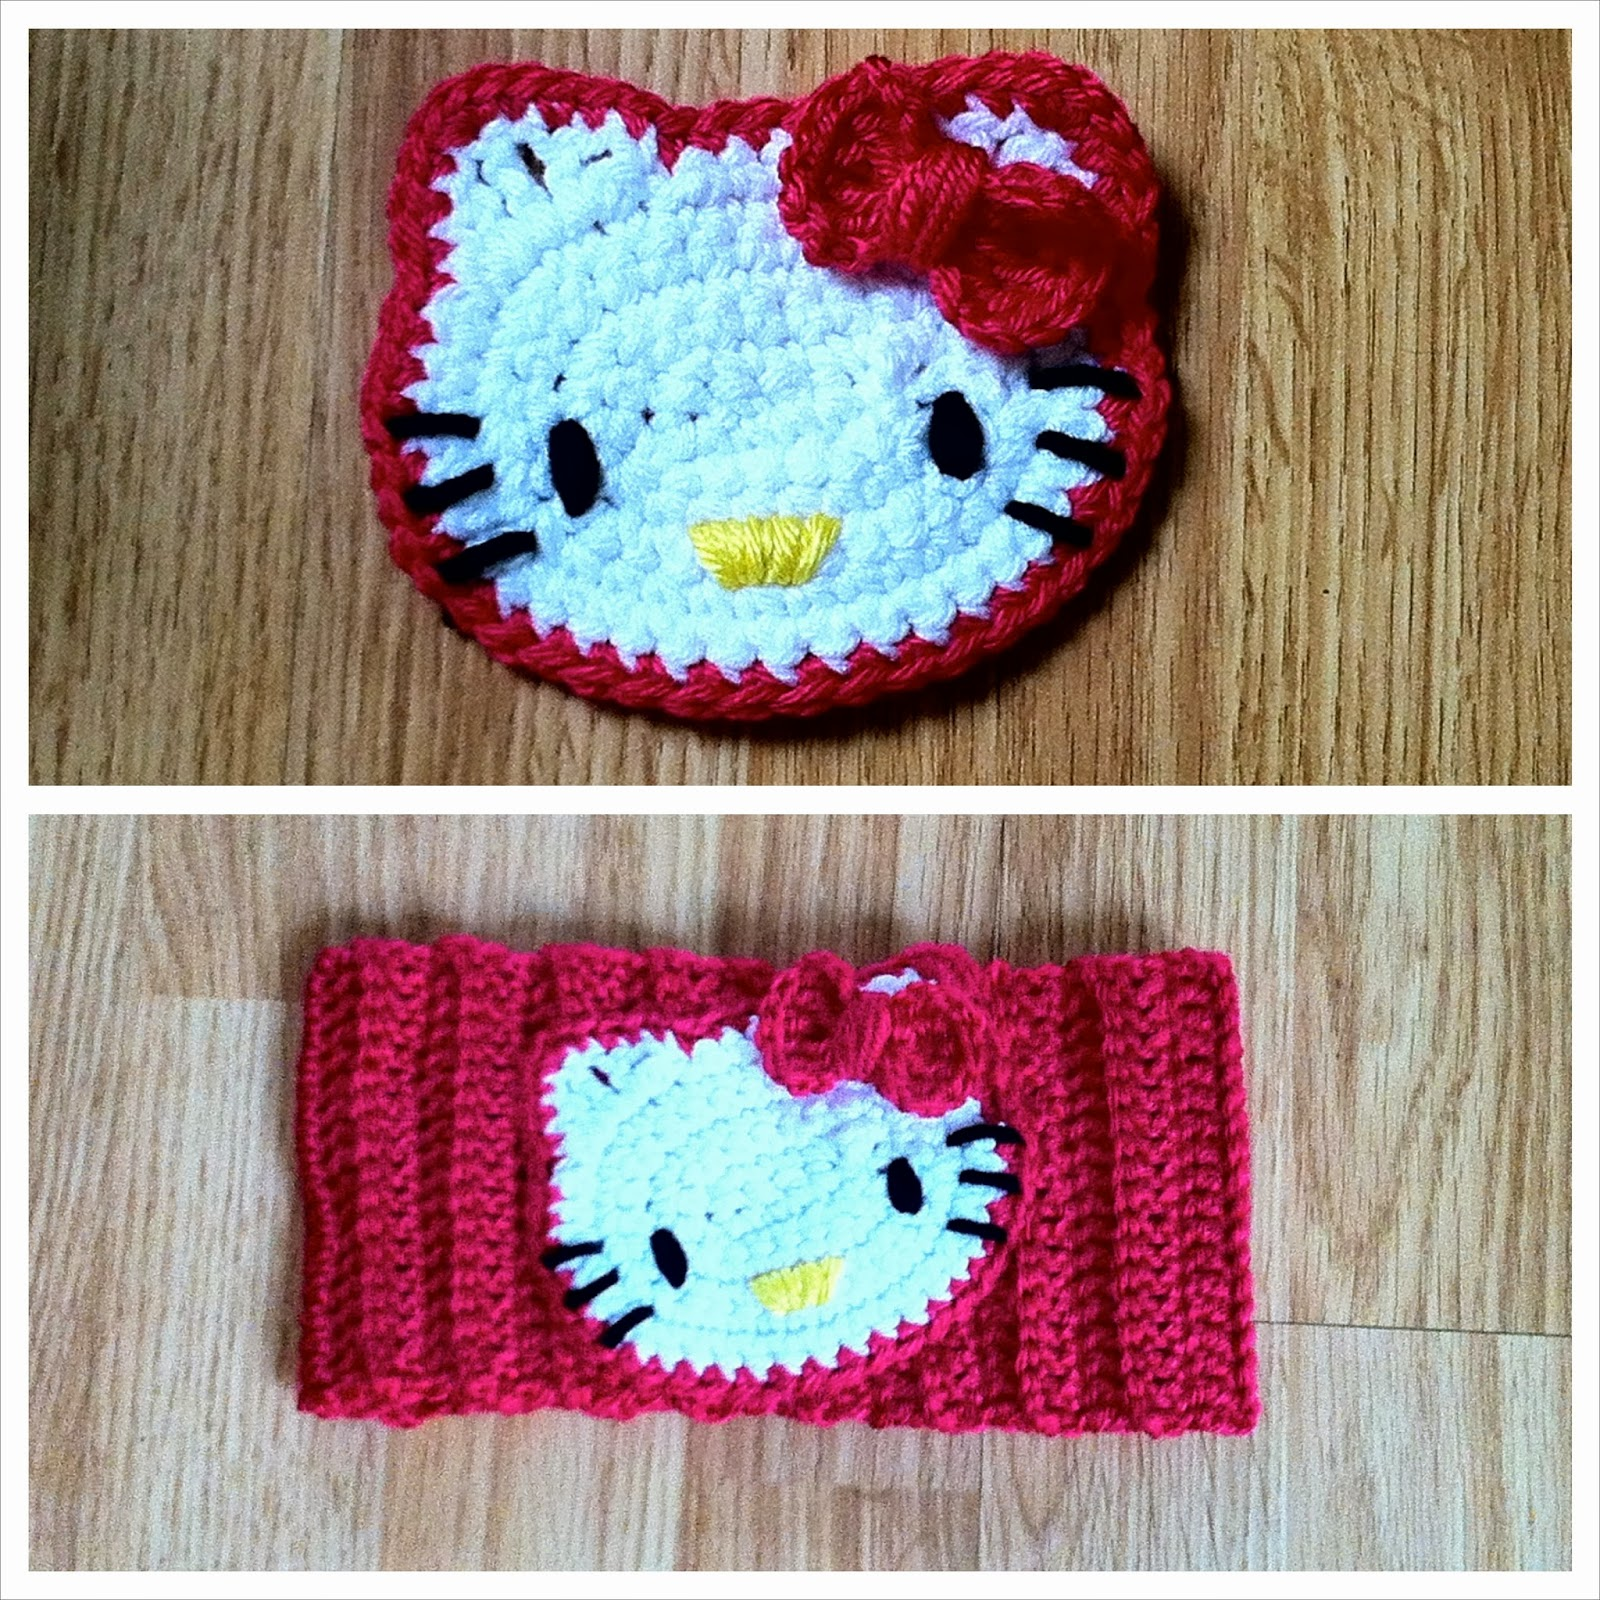 Free Crochet Pattern For A Hello Kitty Hat : The Way I Crochet: Hello Kitty Crochet Headband